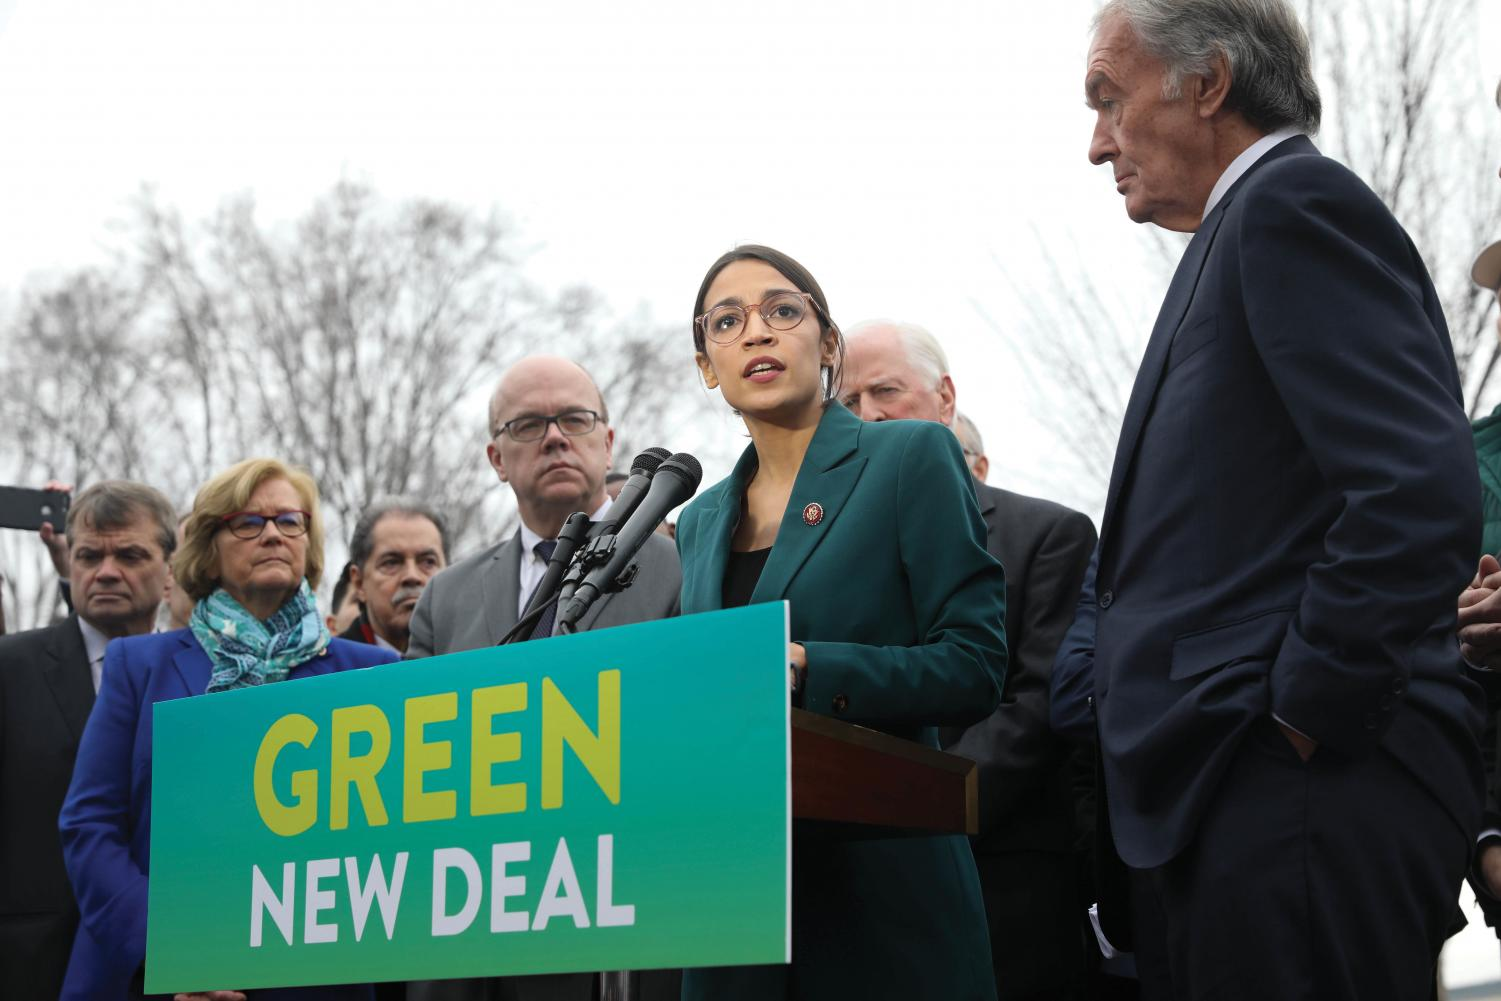 Sixty democrats support Ocasio-Cortez's Green New Deal.